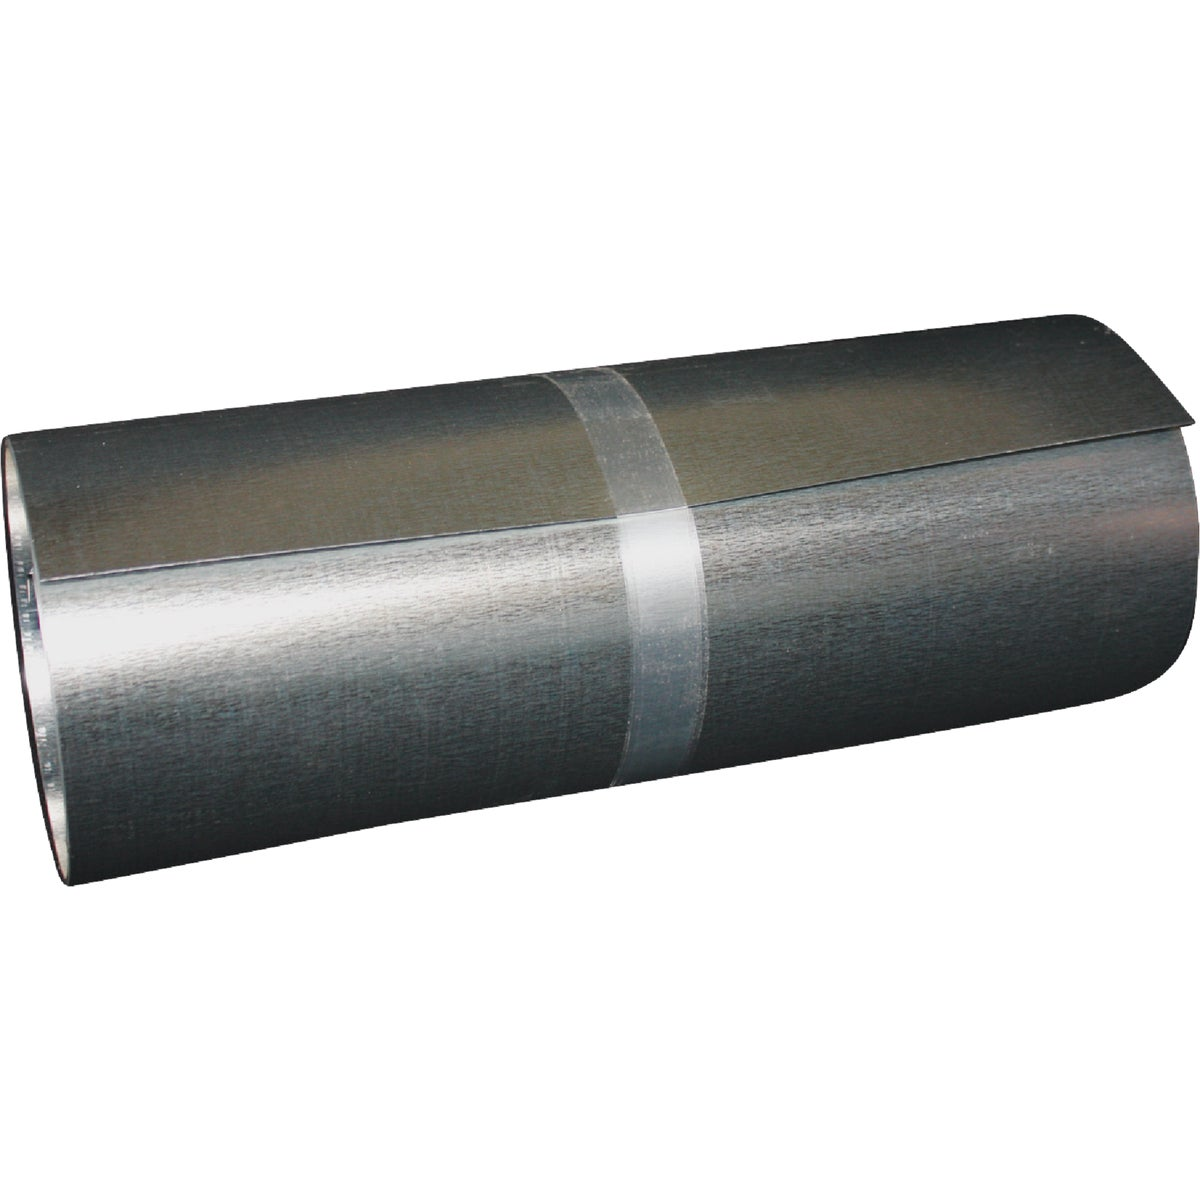 "8""X10' GALV ROLL VALLEY - 30023-GV10 by Klauer Mfg Co"